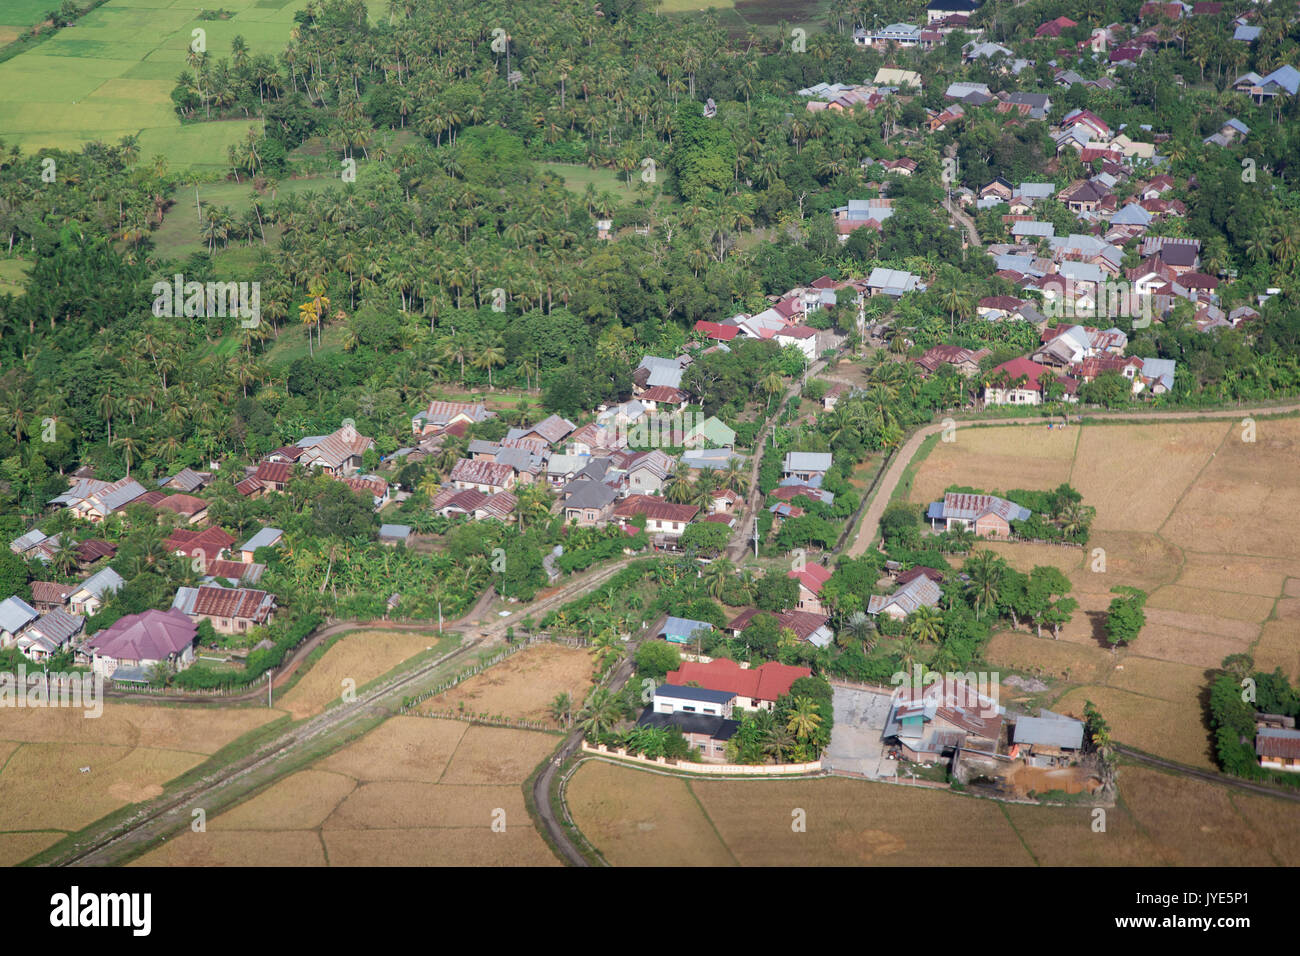 Banda Aceh aerial view of residential area - Stock Image